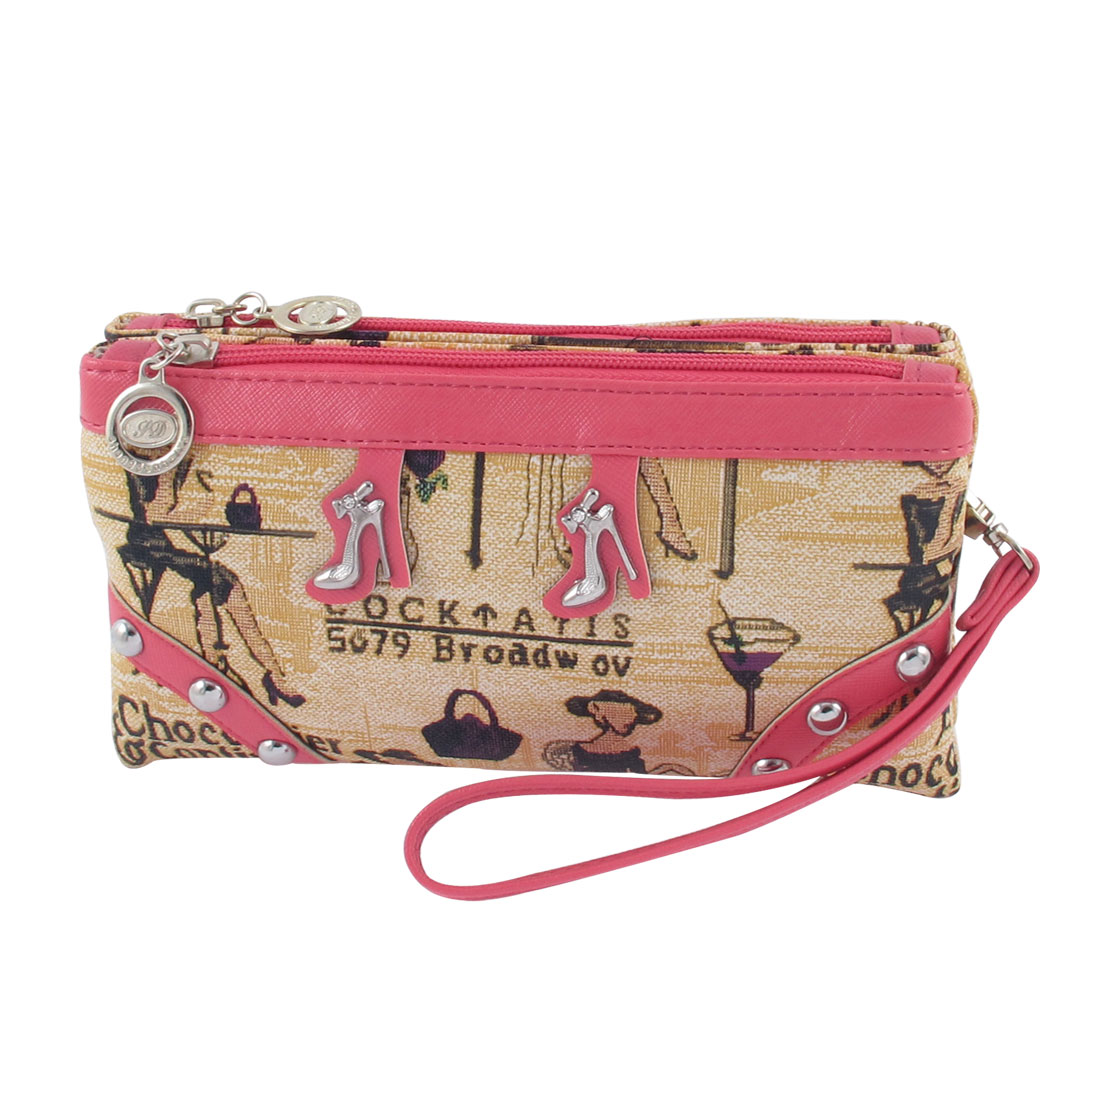 Antje Women's High-Heeled Shoes Decor Shoulder Bag Pink